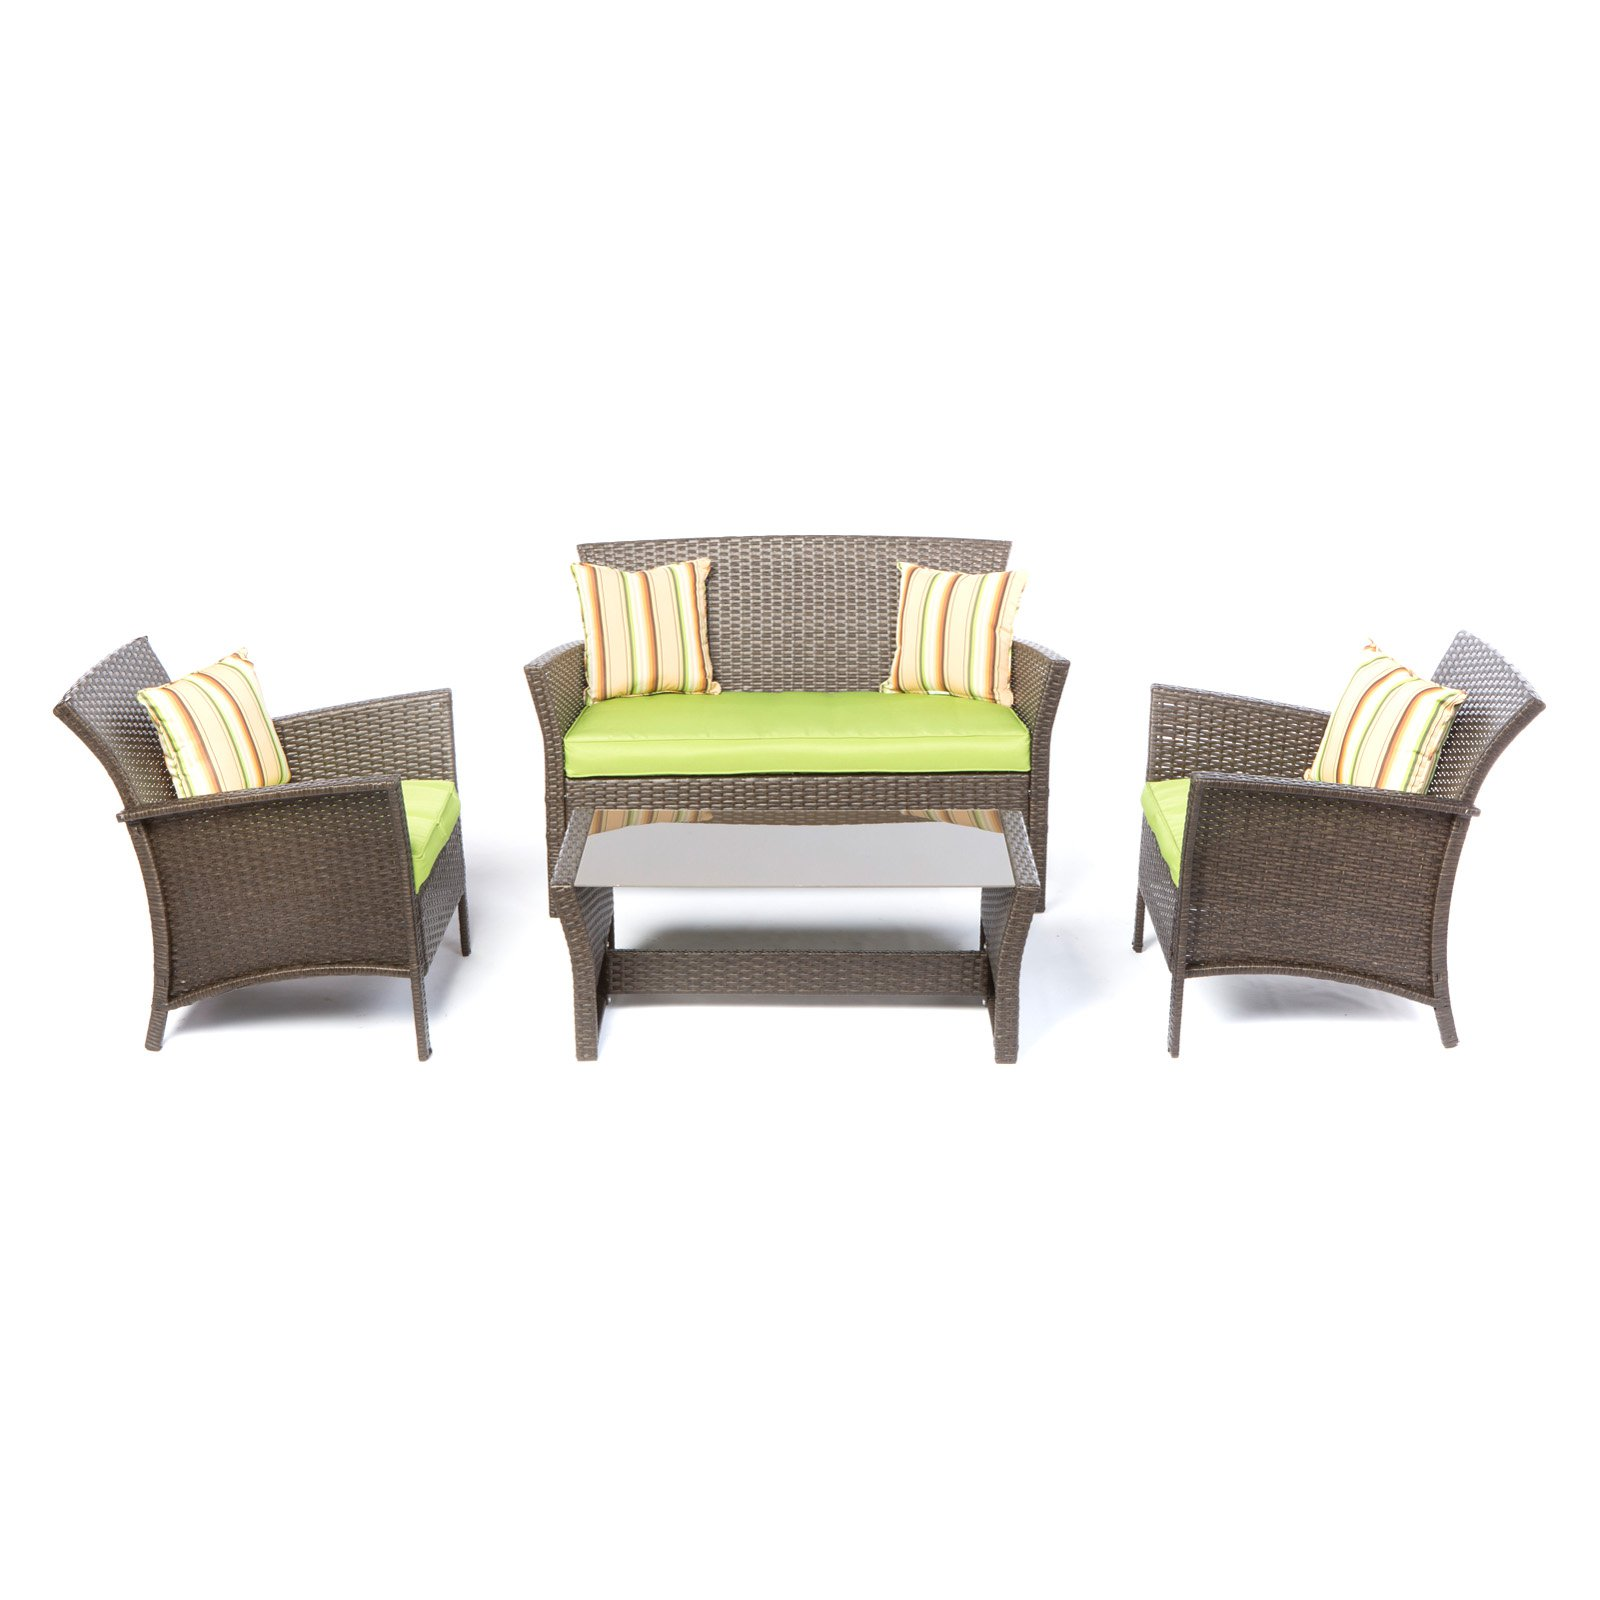 Alfresco Bimini 4 Piece All Weather Wicker Conversation Set